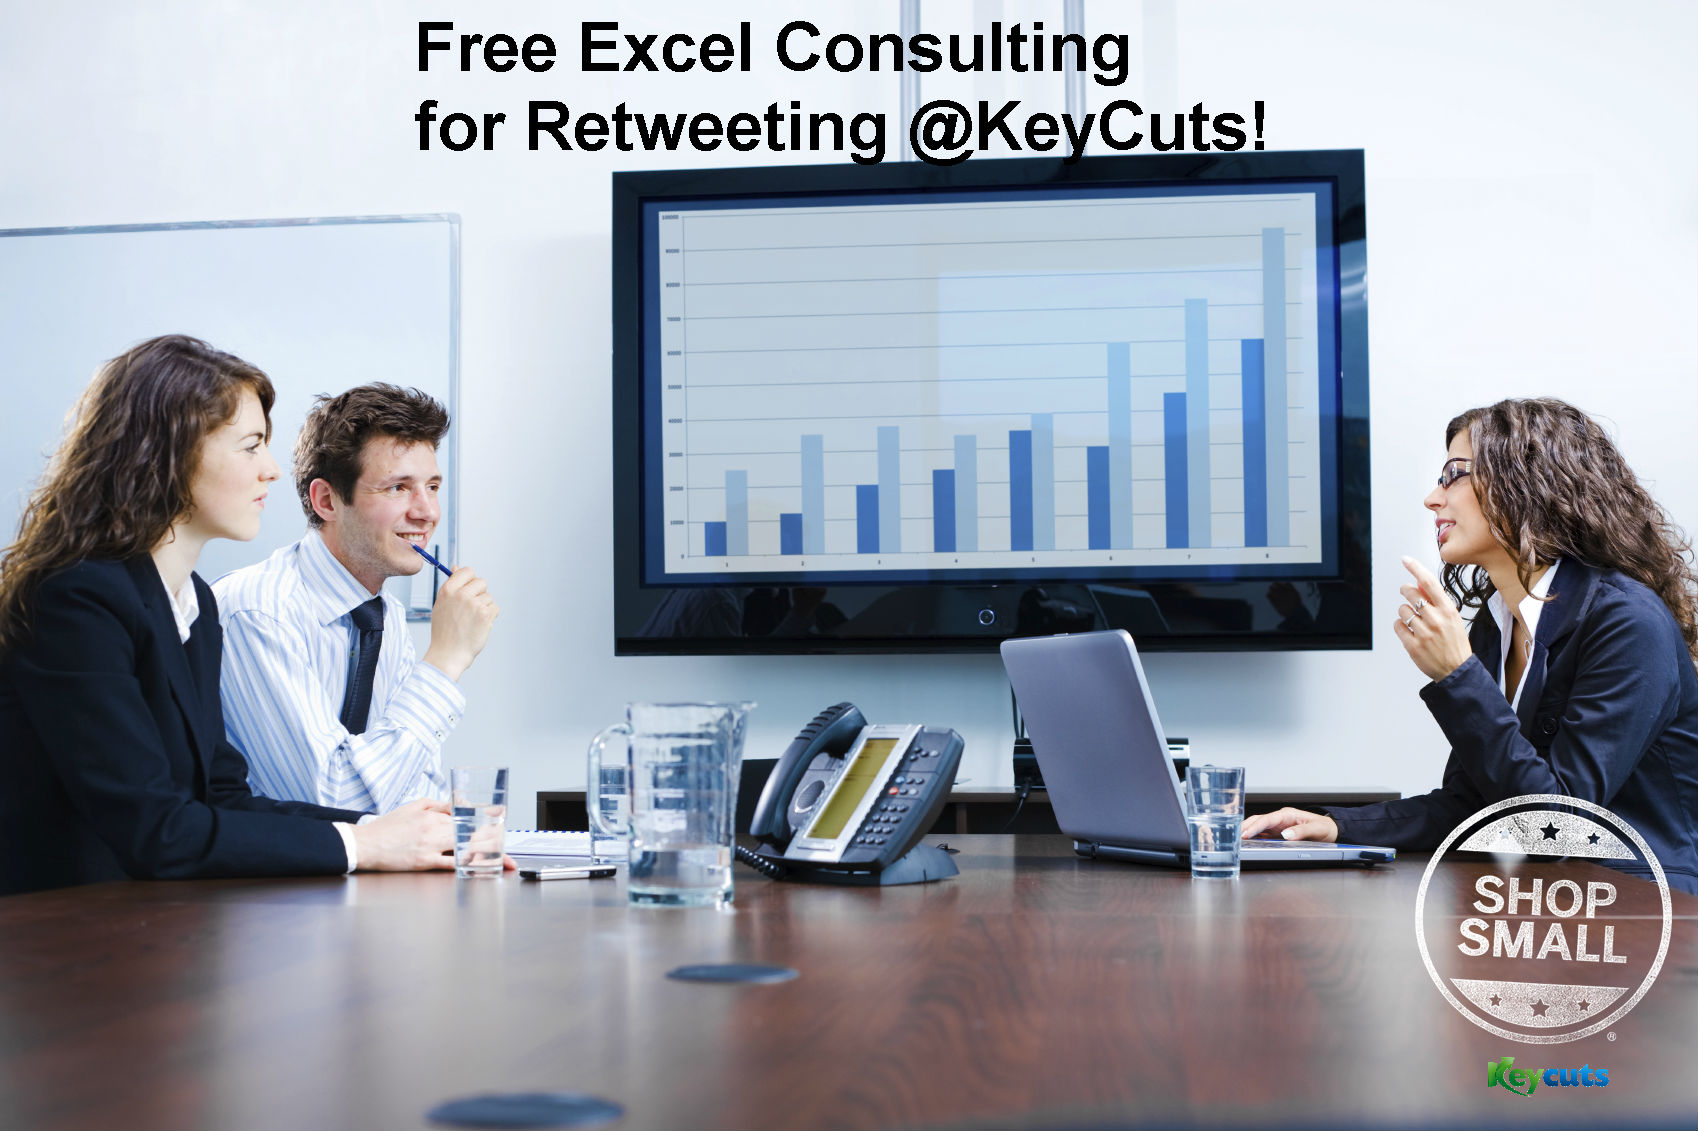 Free Consulting KeyCuts